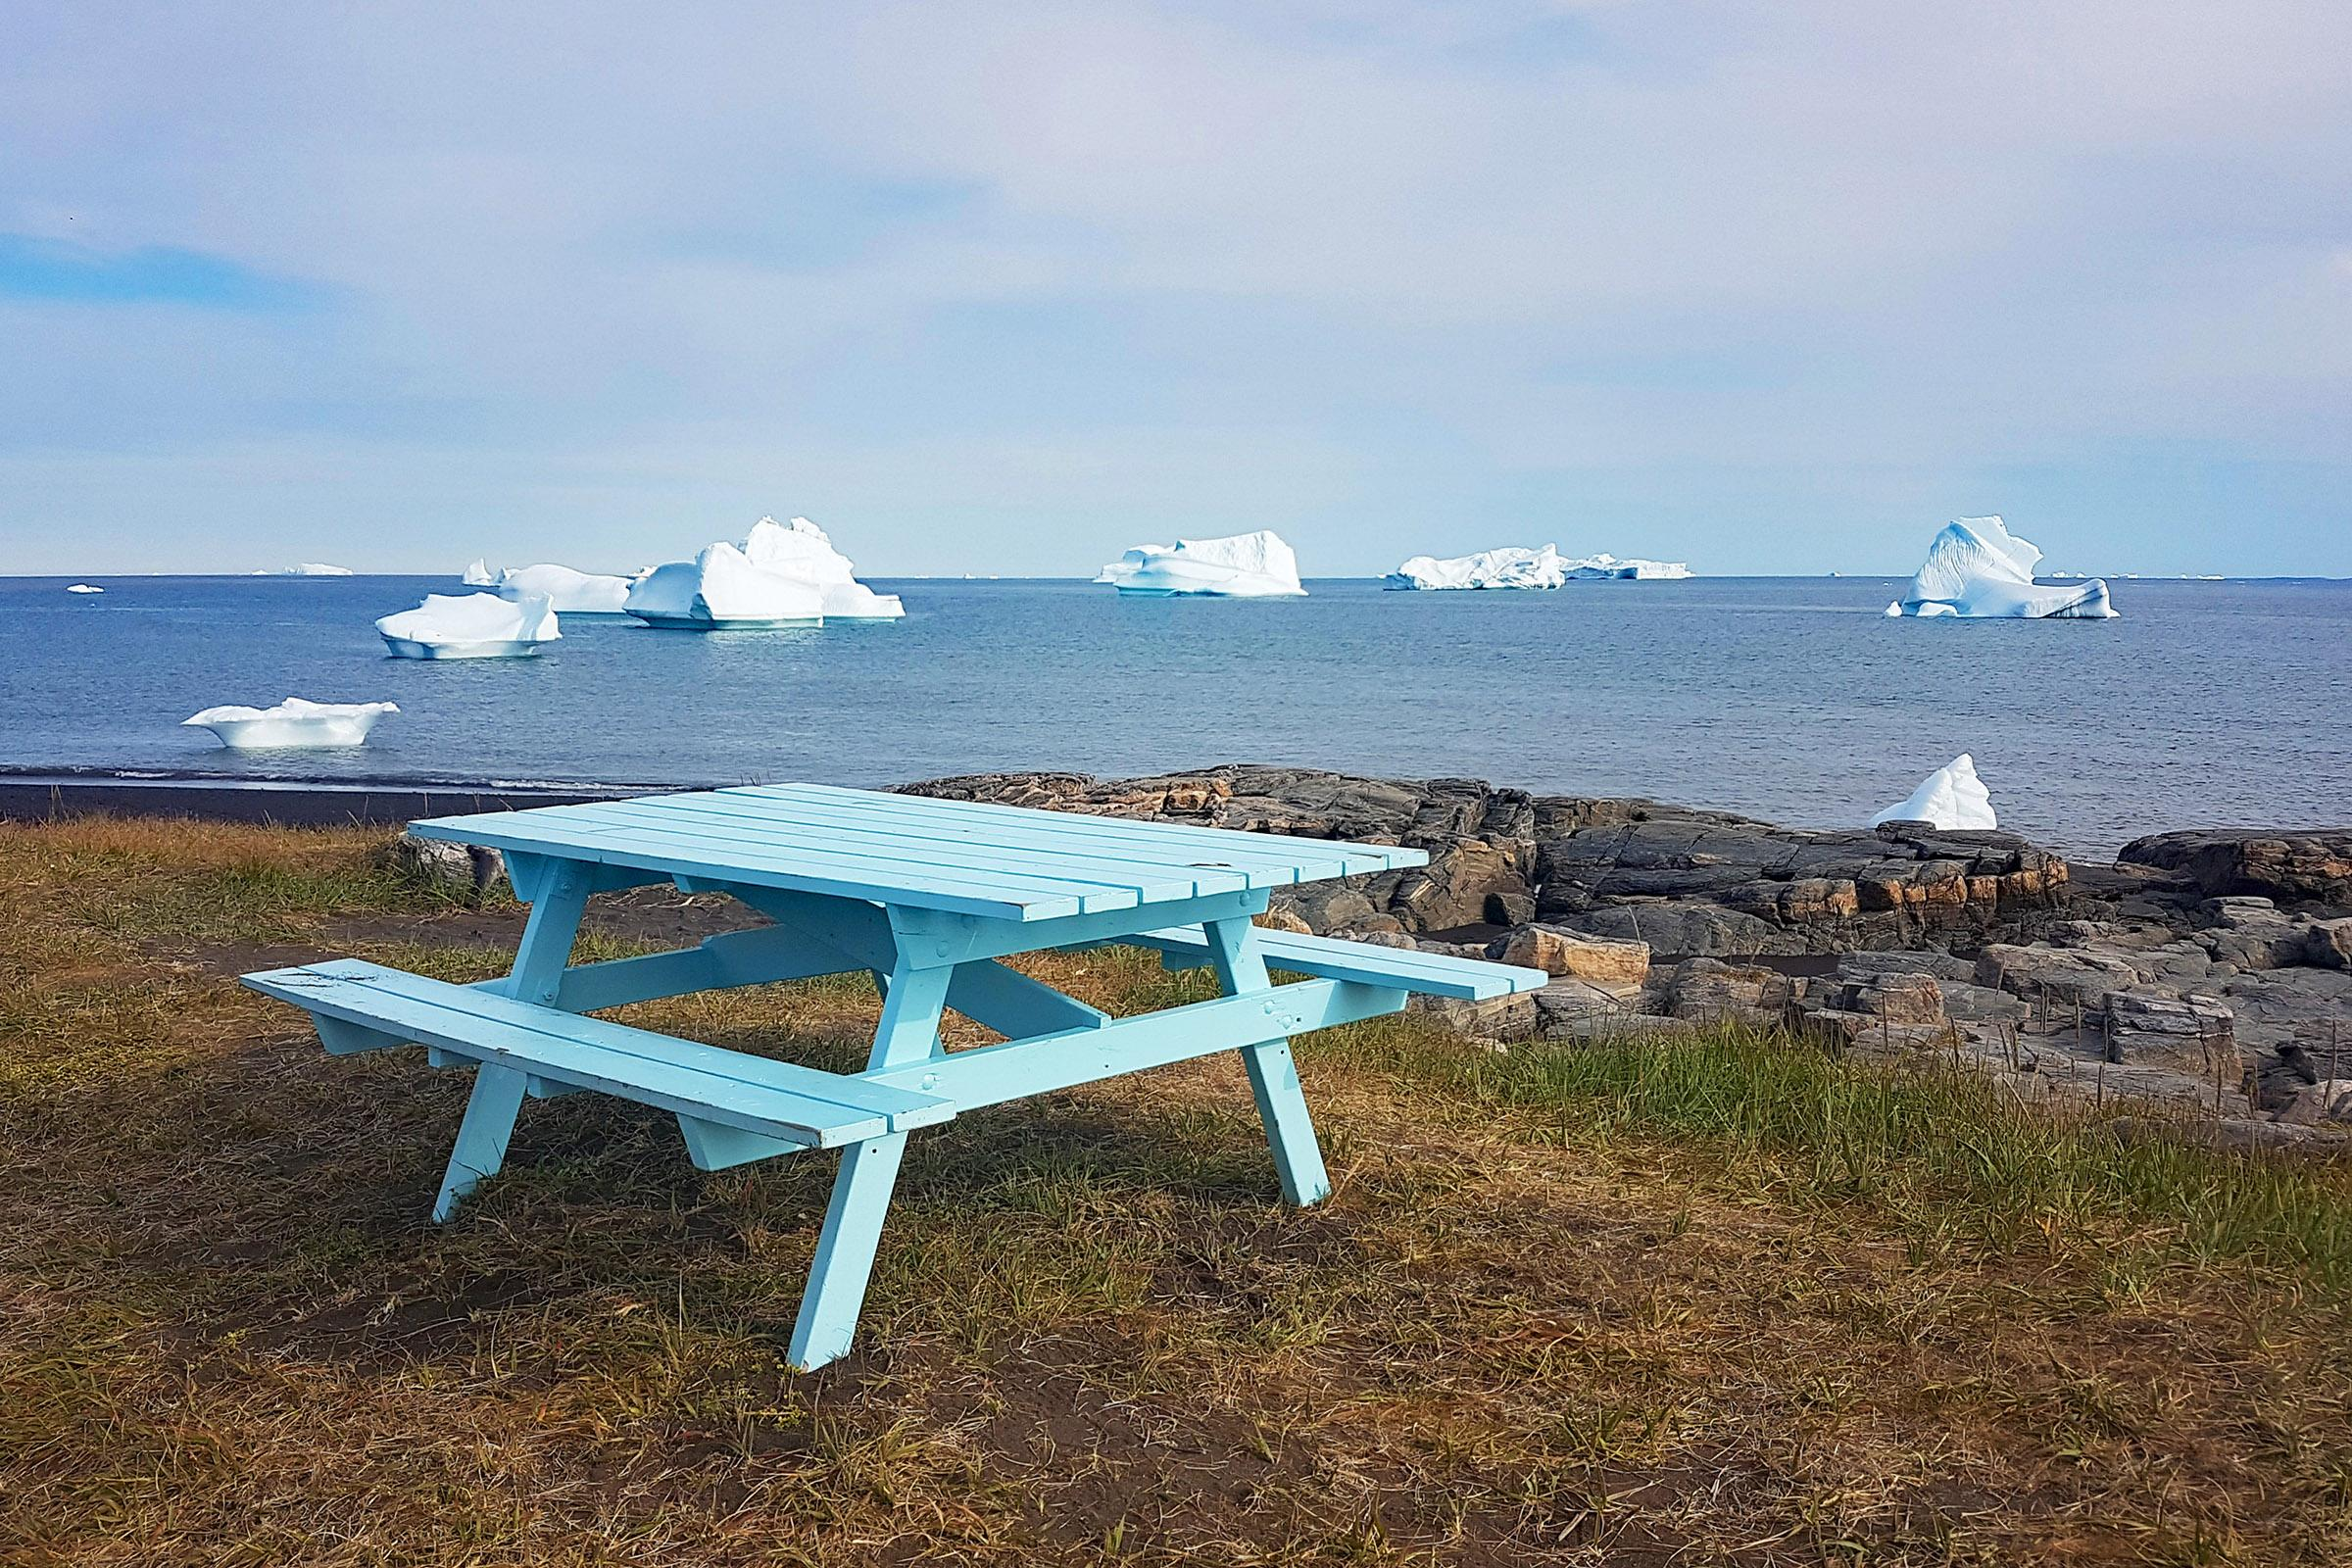 Picnic table with icebergs in the background in Qeqertarsuaq on Disko Island in Greenland. Photo by Jurga Rubinovaite.